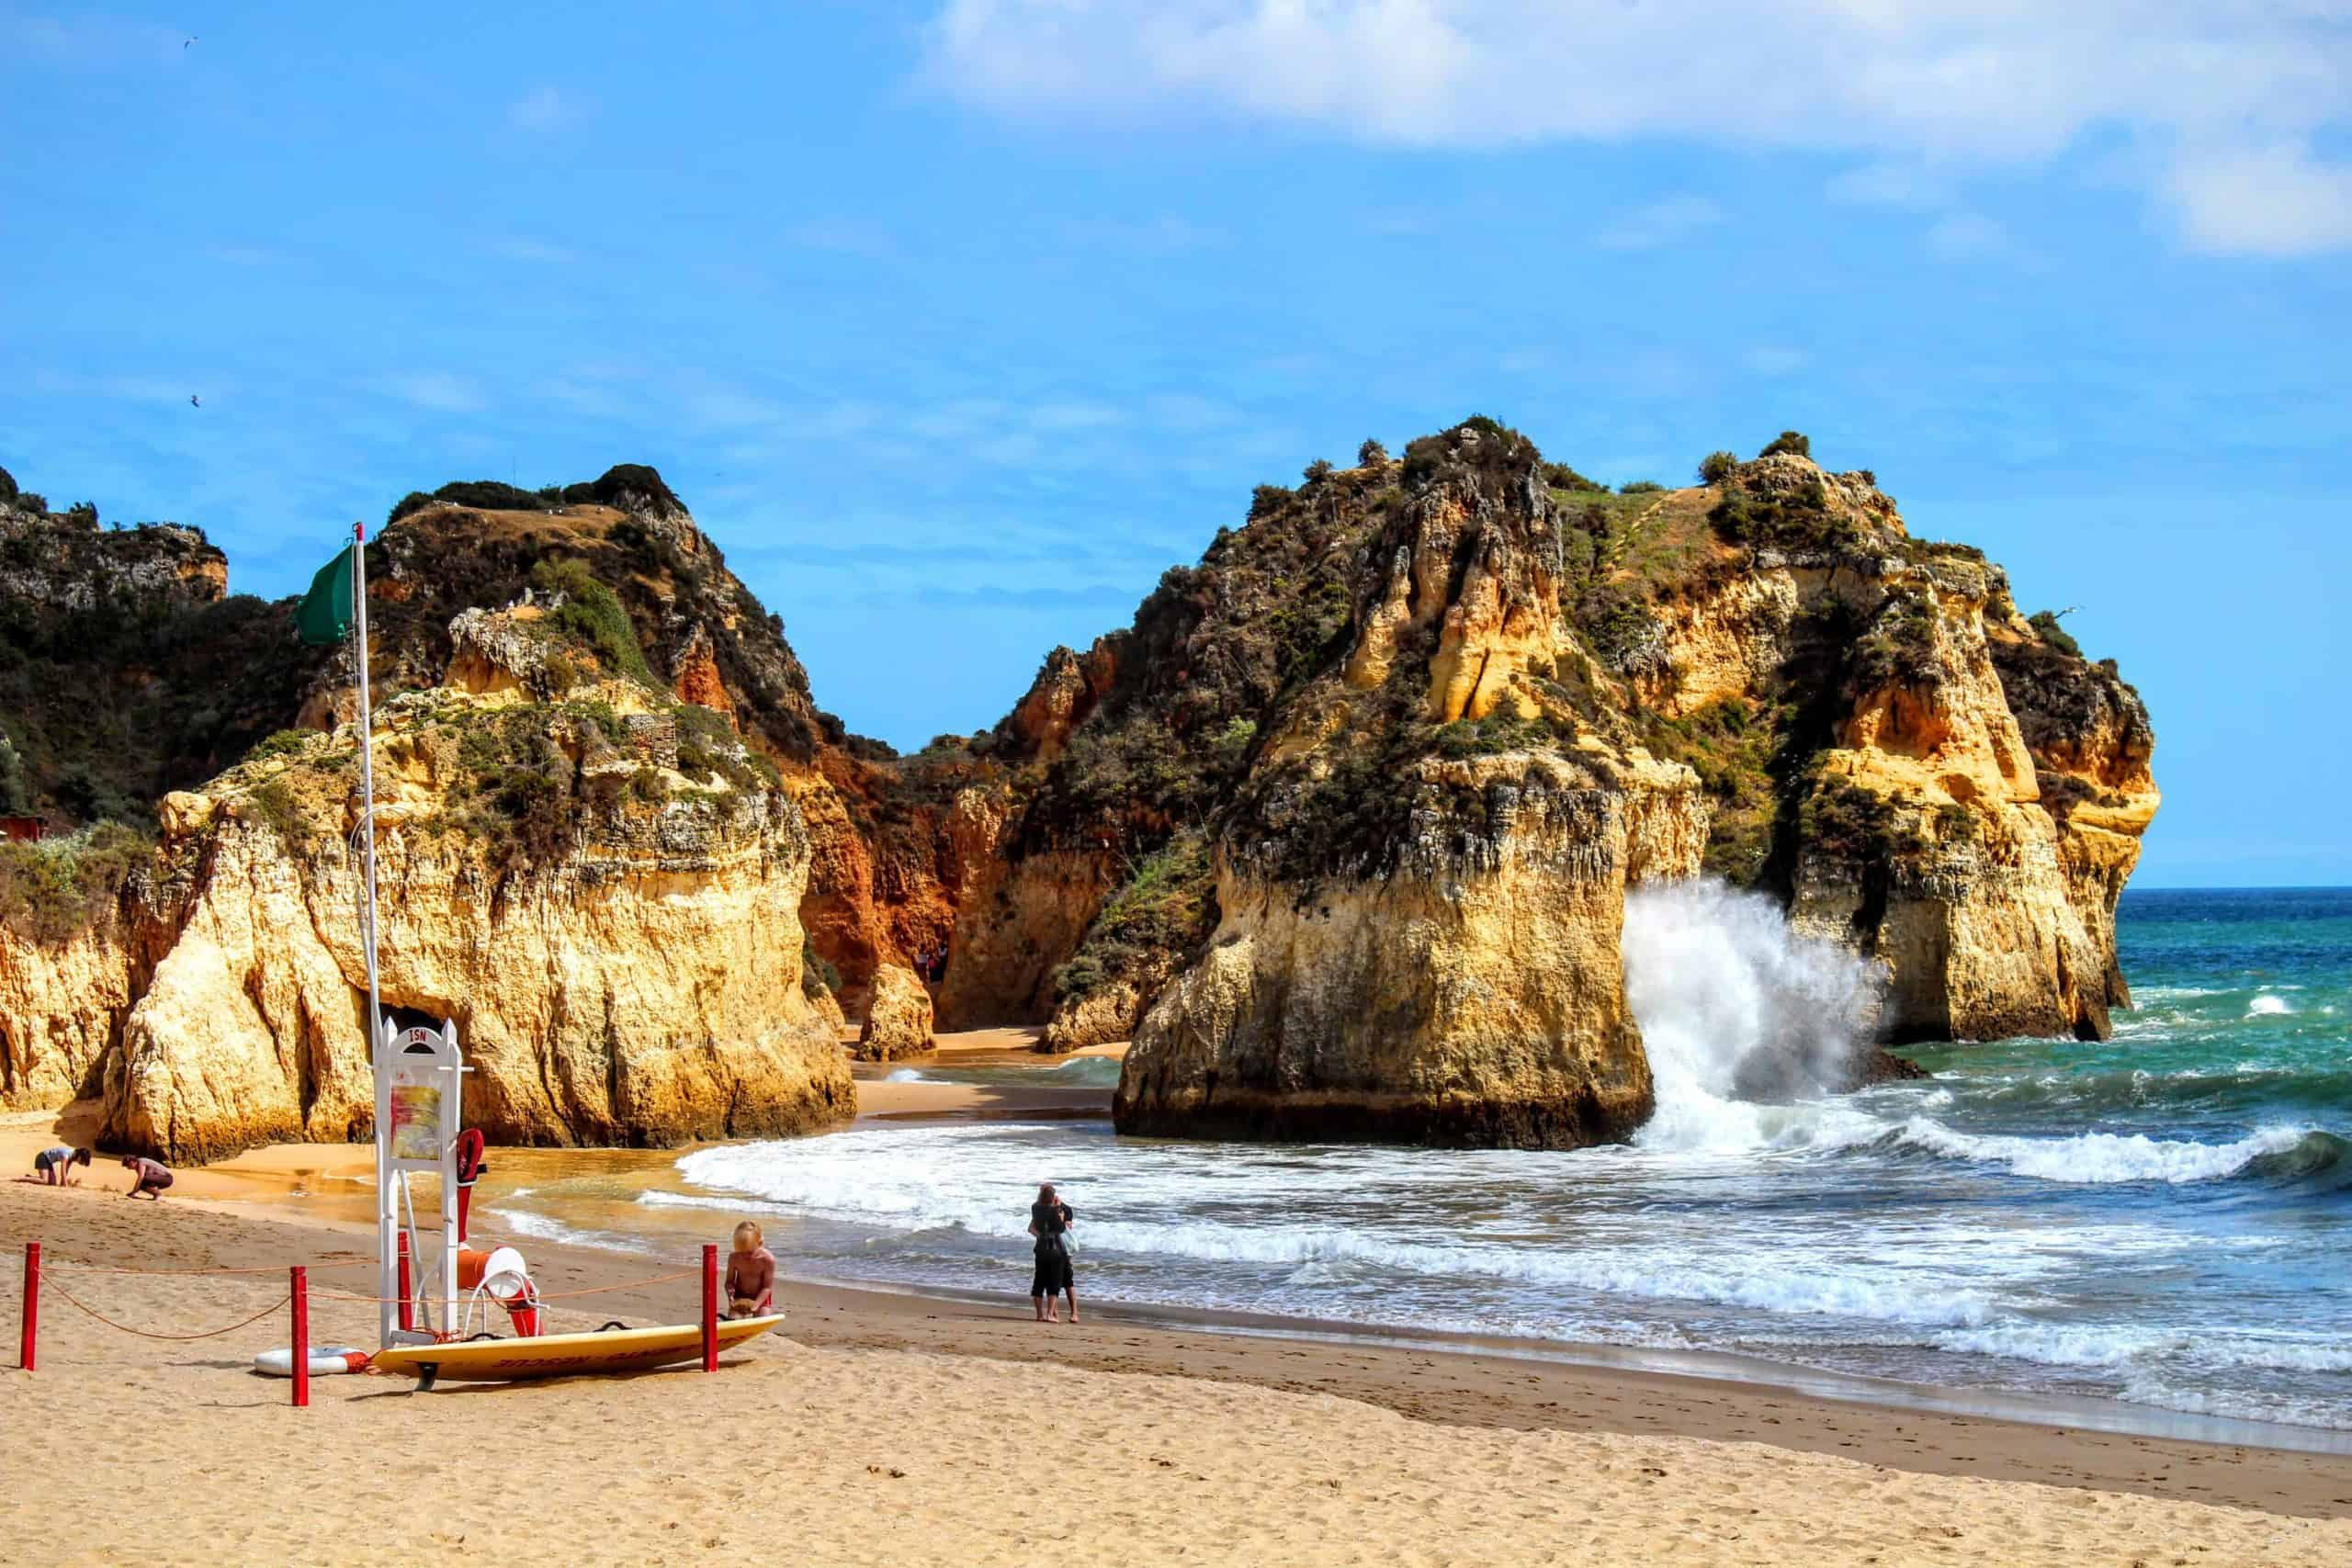 Beaches in Alvor may make Summer be the best time to visit the Algarve.